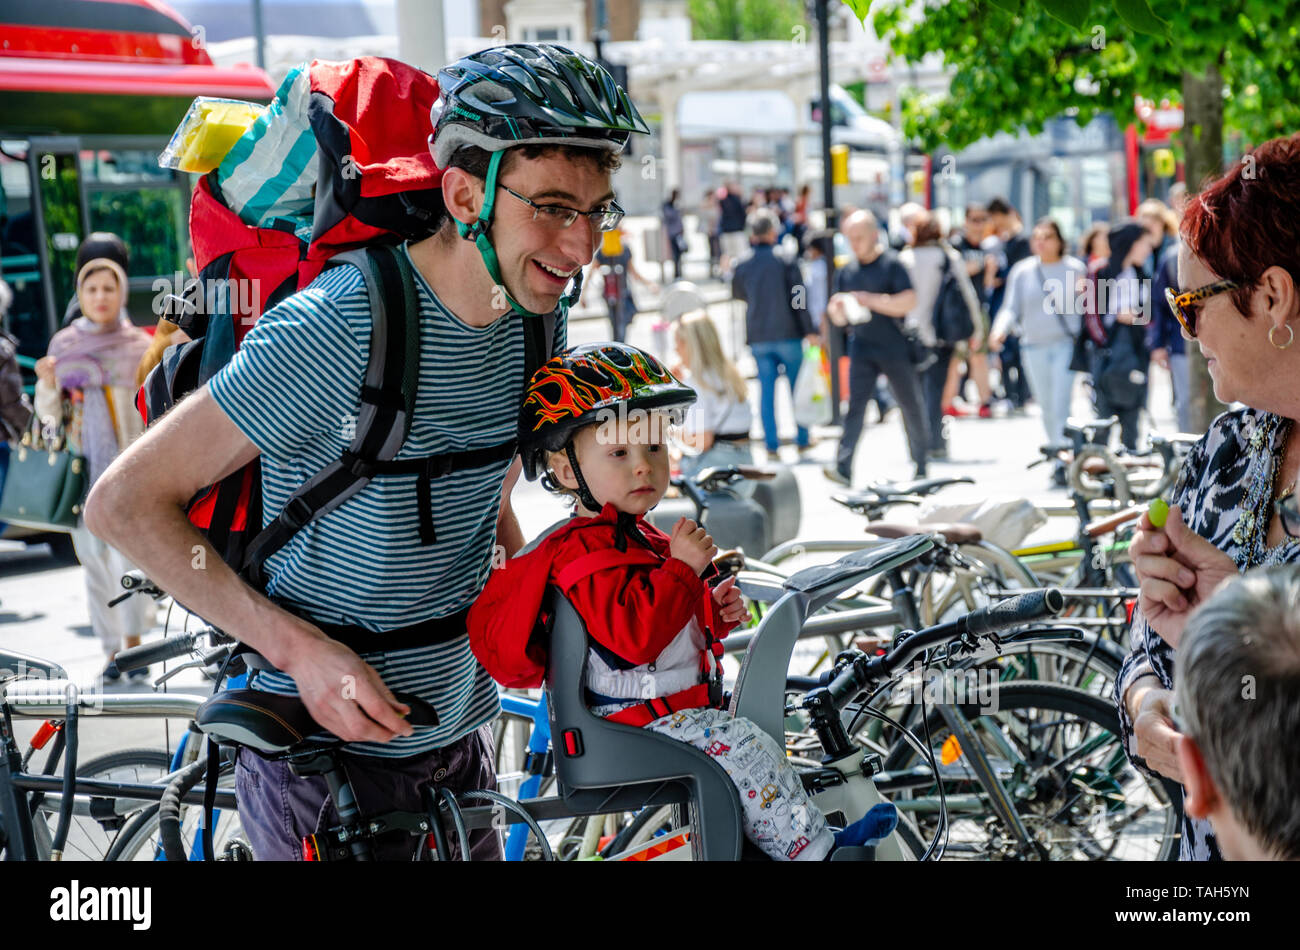 a-young-father-with-his-toddler-son-look-happy-and-smile-as-they-talk-to-a-couple-of-ladies-wearing-bicycle-helmets-ready-to-cycle-away-TAH5YN.jpg